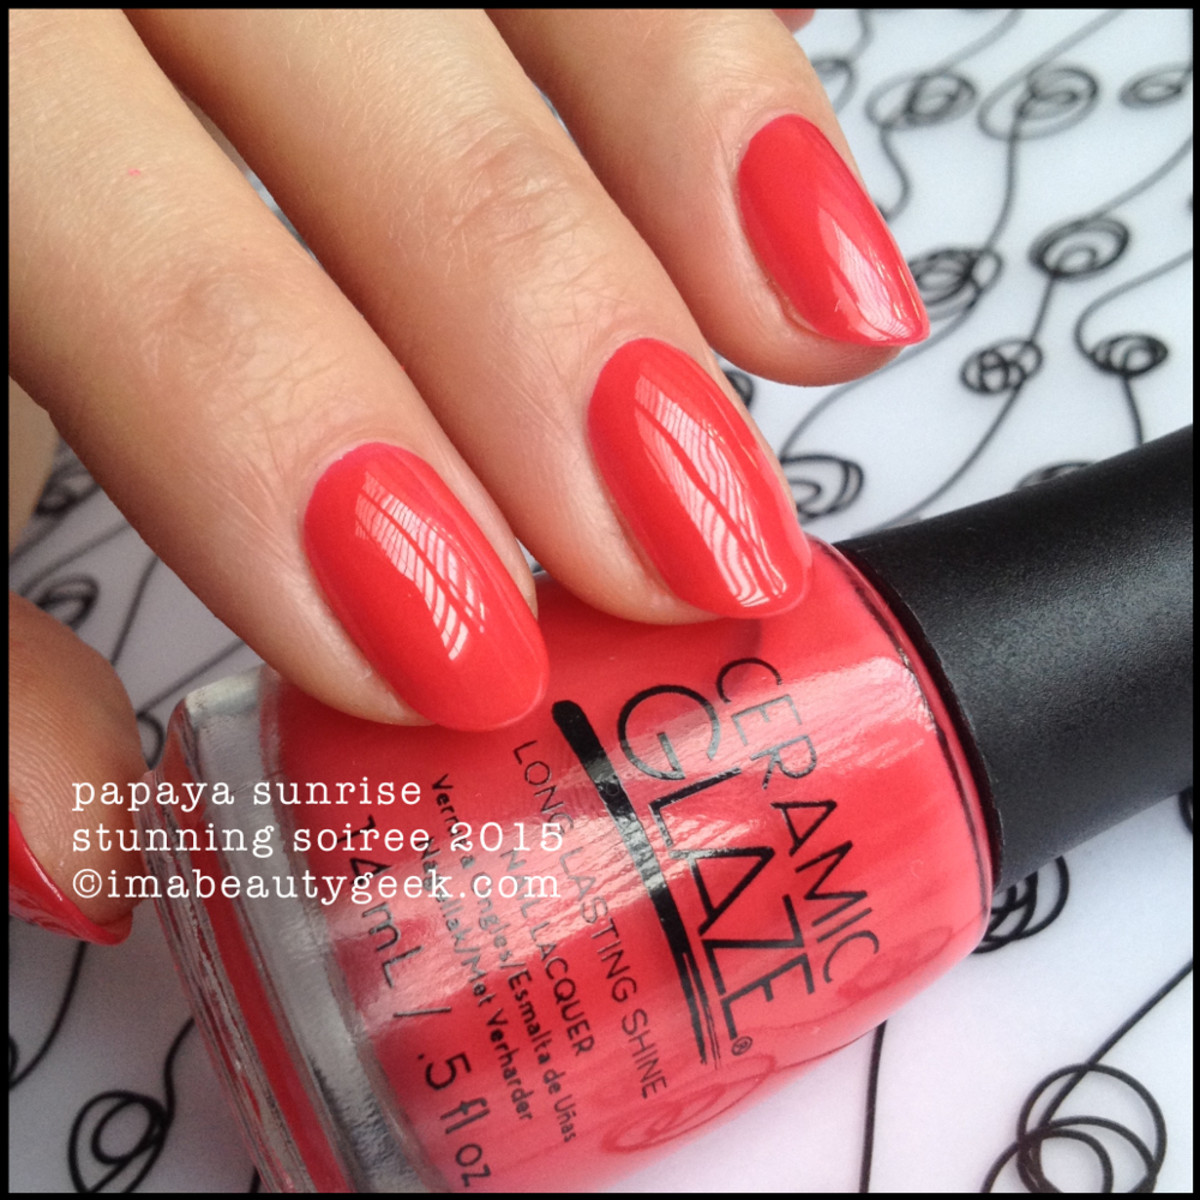 Ceramic Glaze Polish Papaya Sunrise Swatch Stunning Soiree 2015